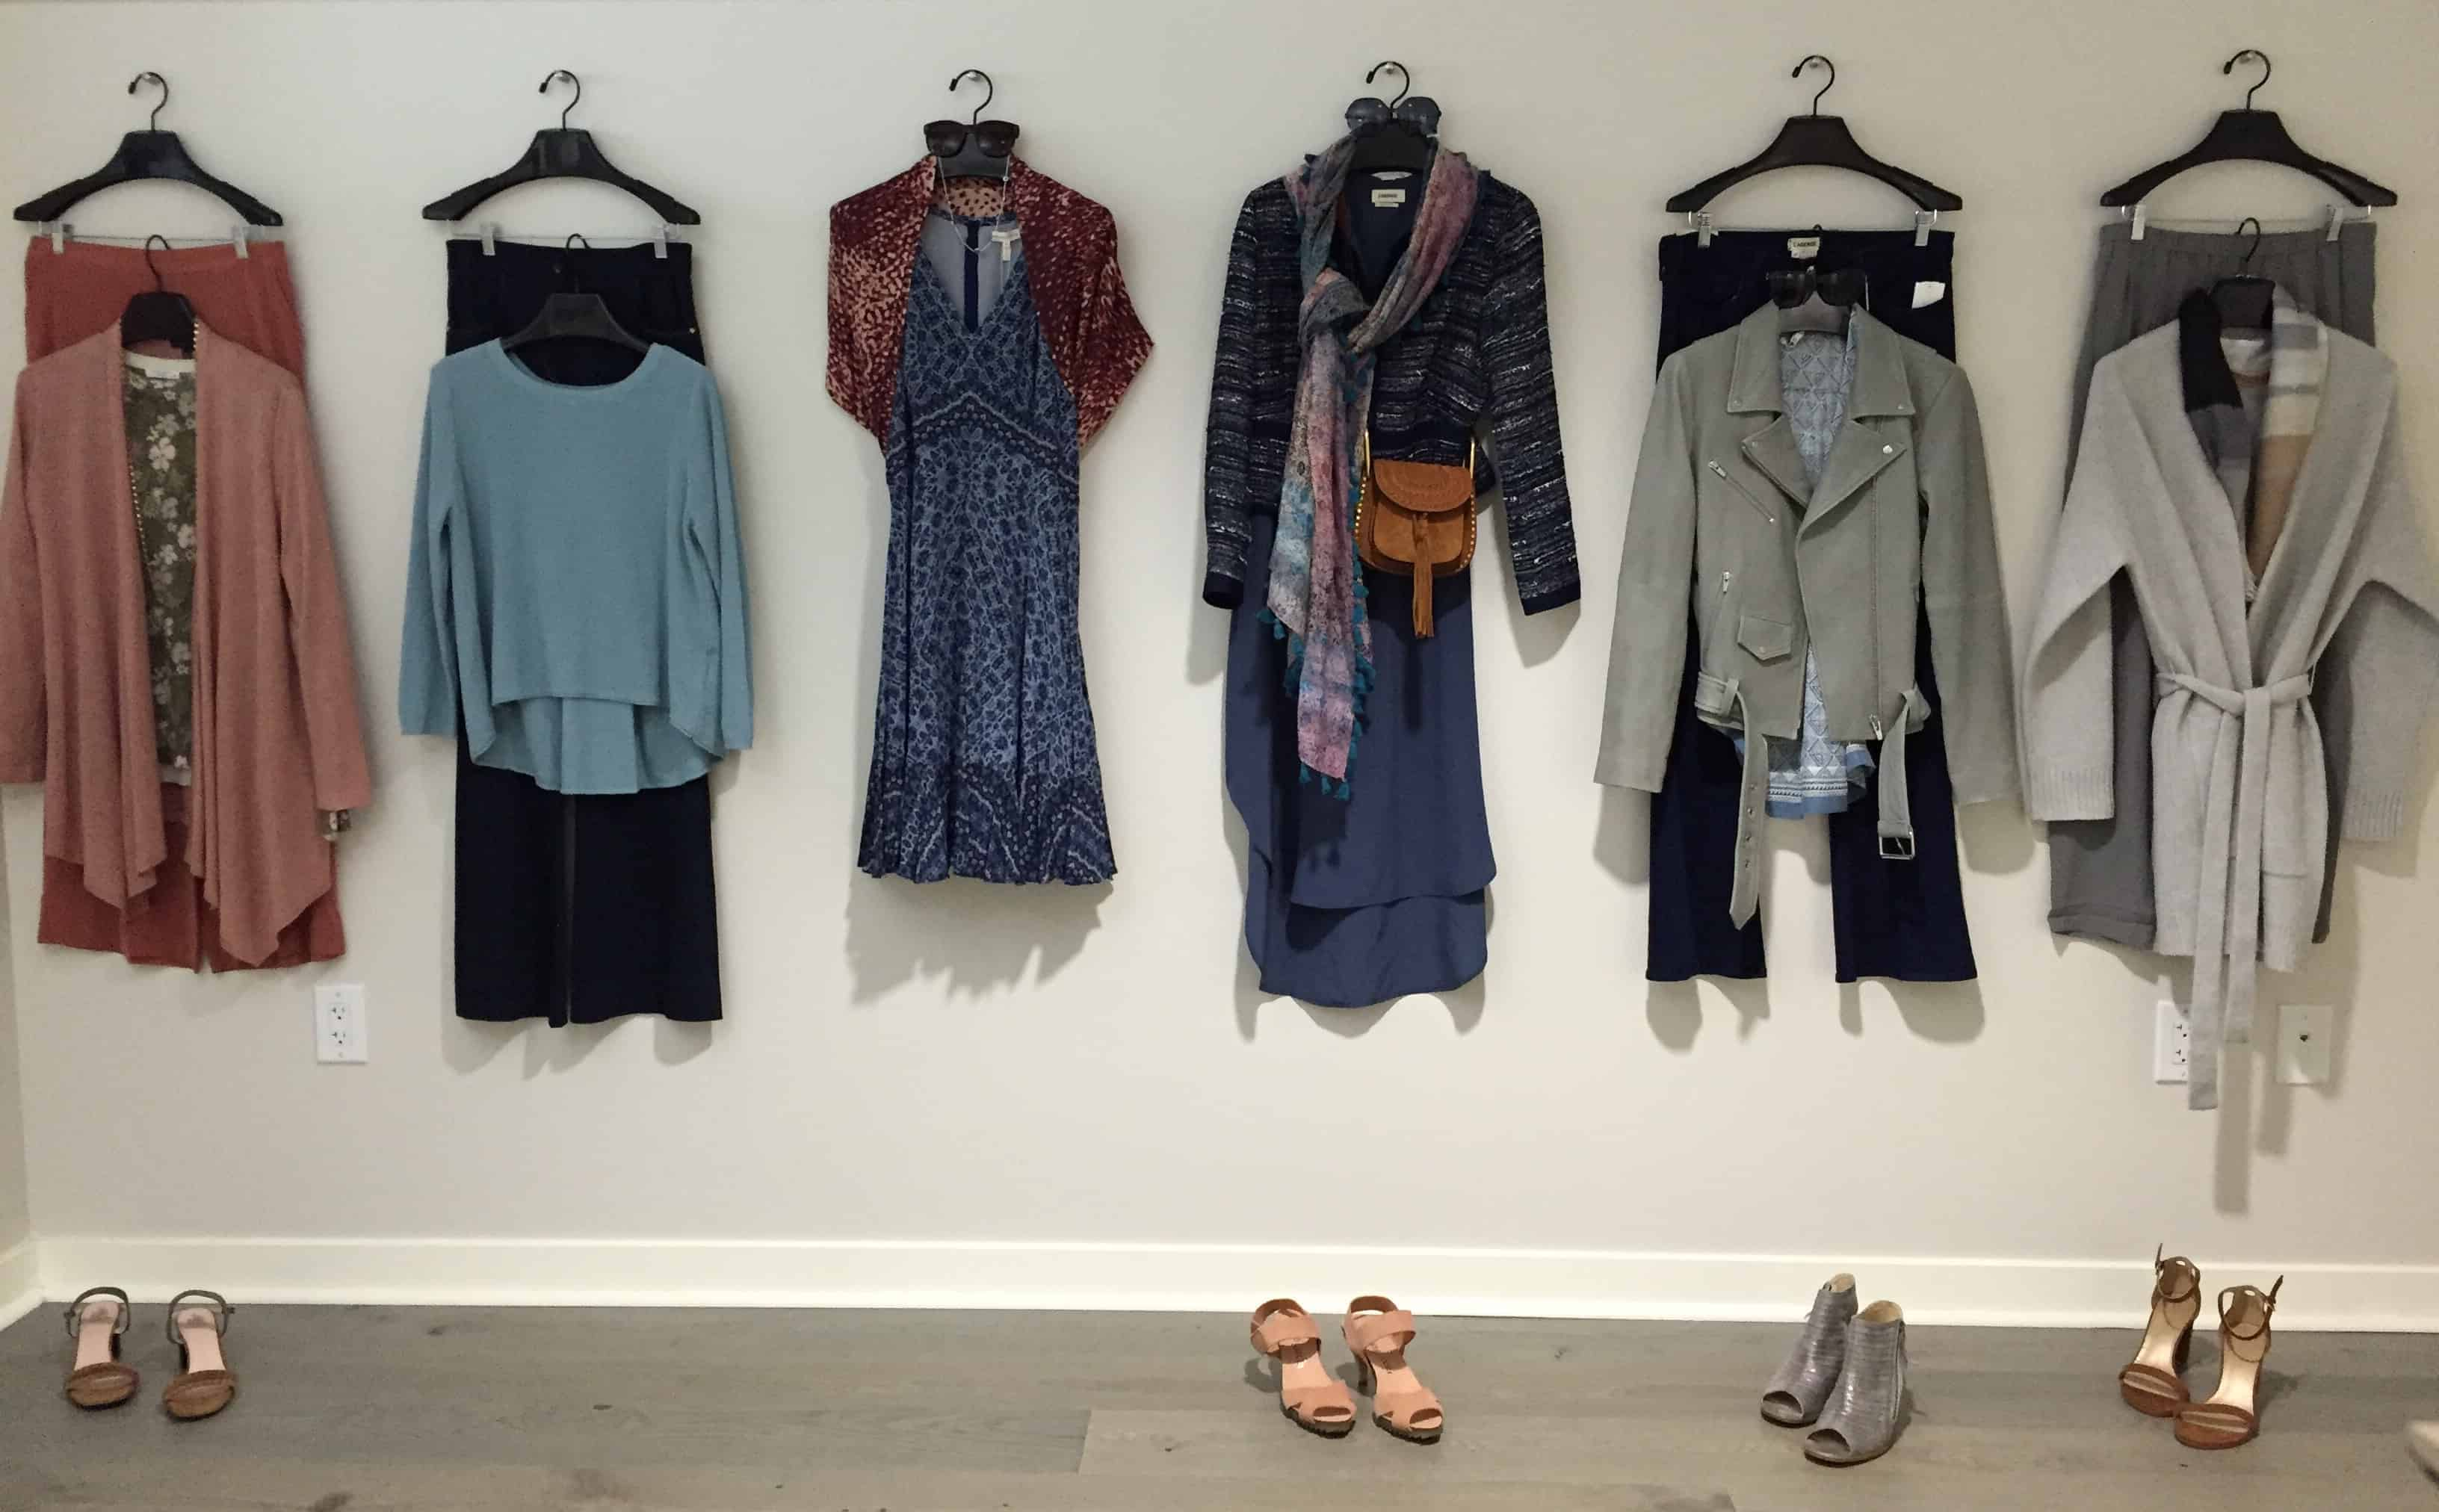 six women's outfits hanging on a wall